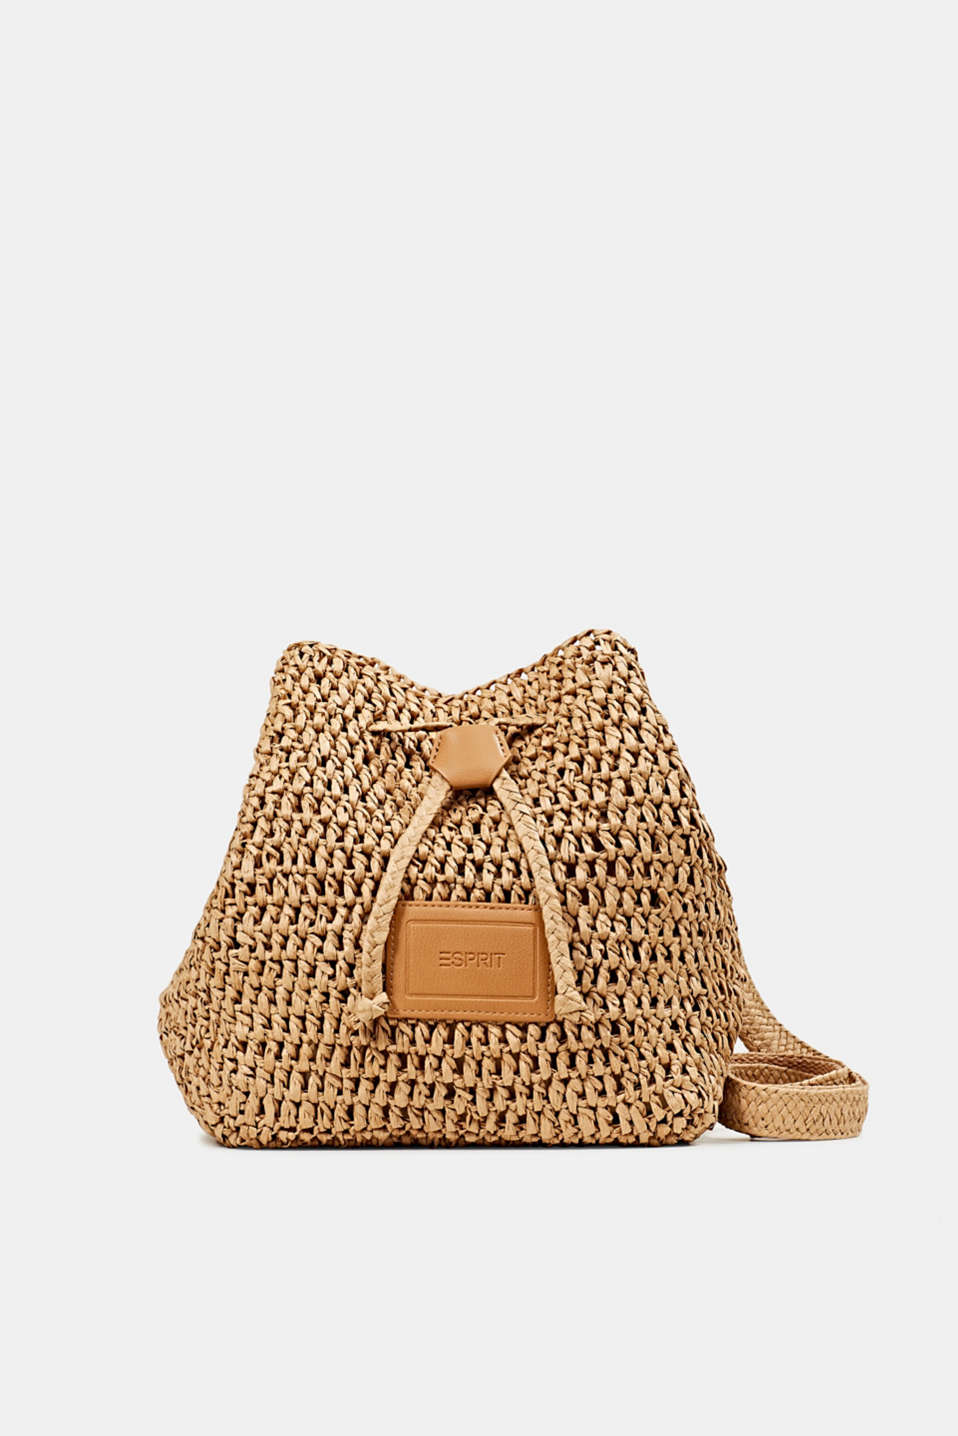 Esprit - Handmade bucket bag made of bast